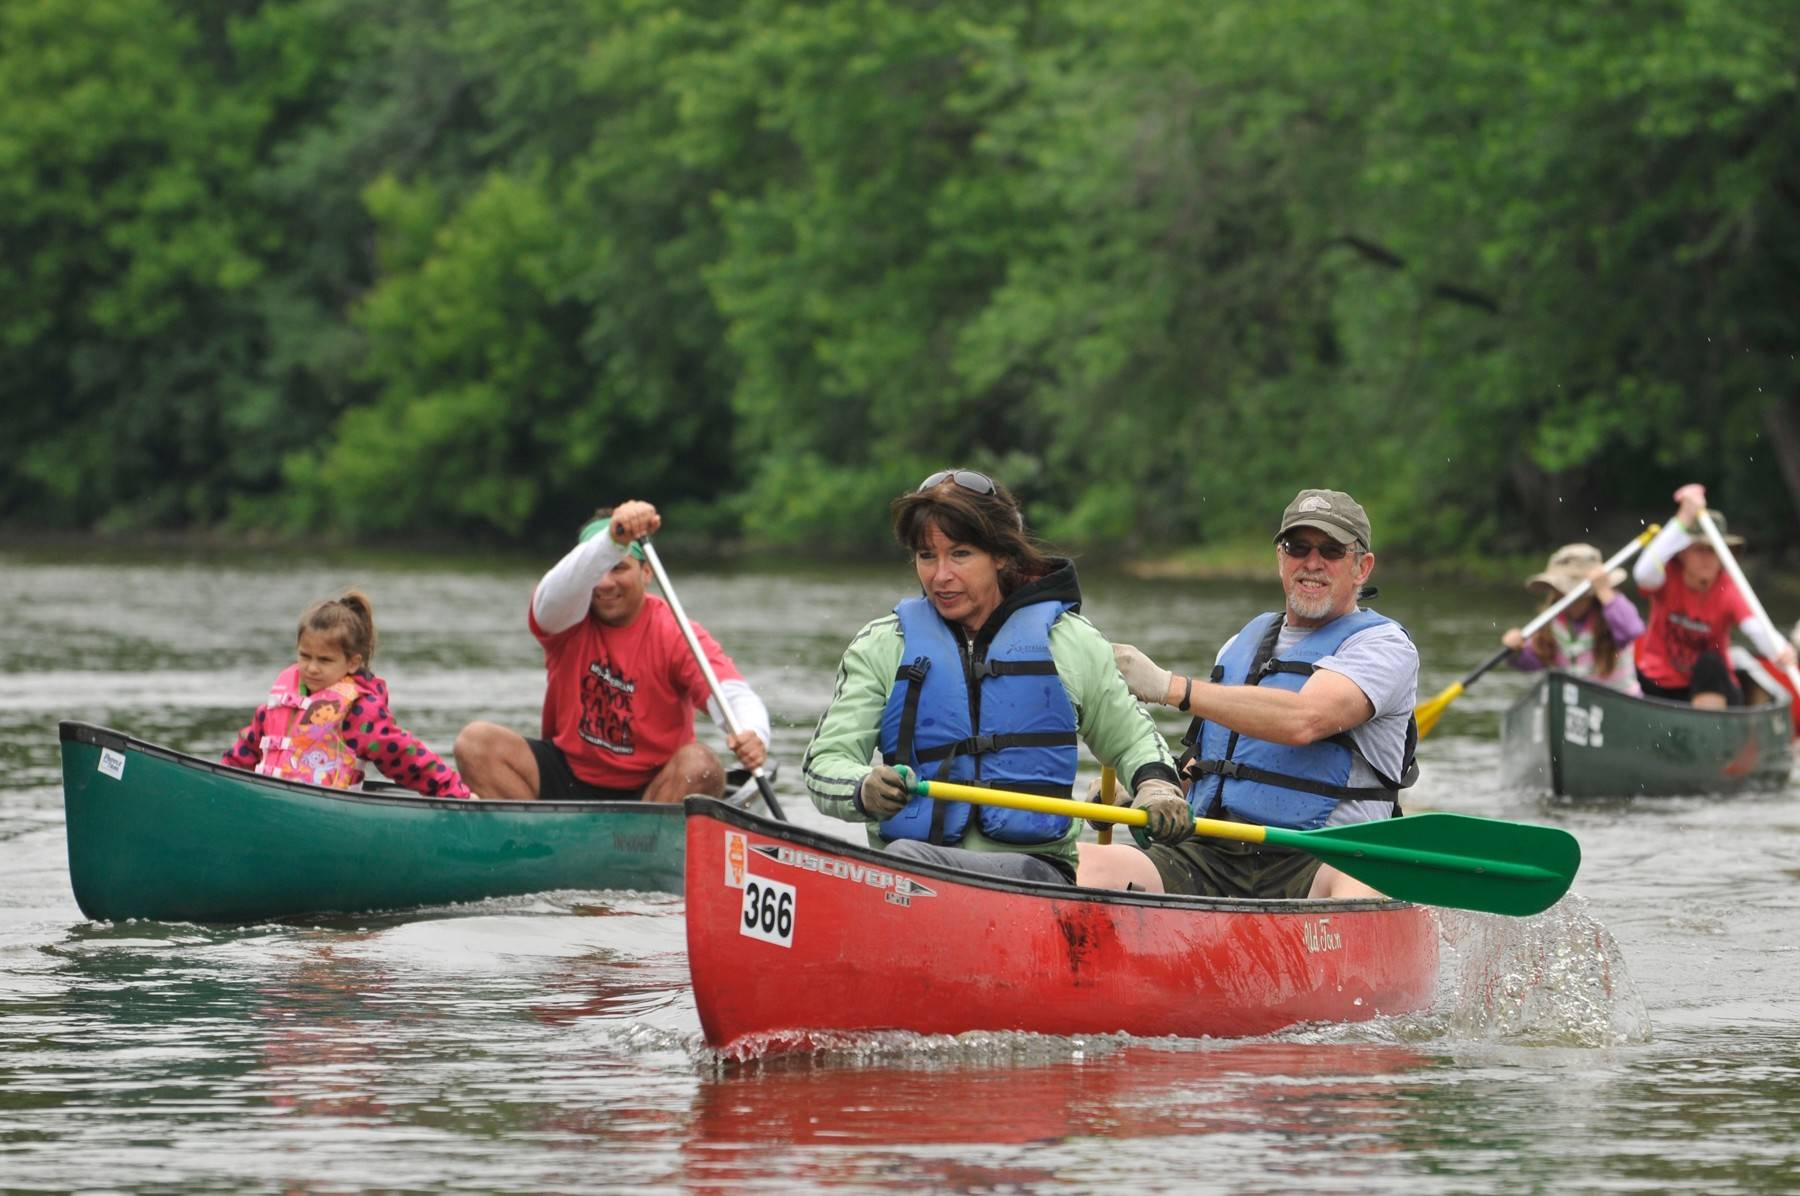 Paddlers of all ages and abilities will take to the Fox River on June 1, when the Mid-American Canoe and Kayak Race returns for its 53rd year.